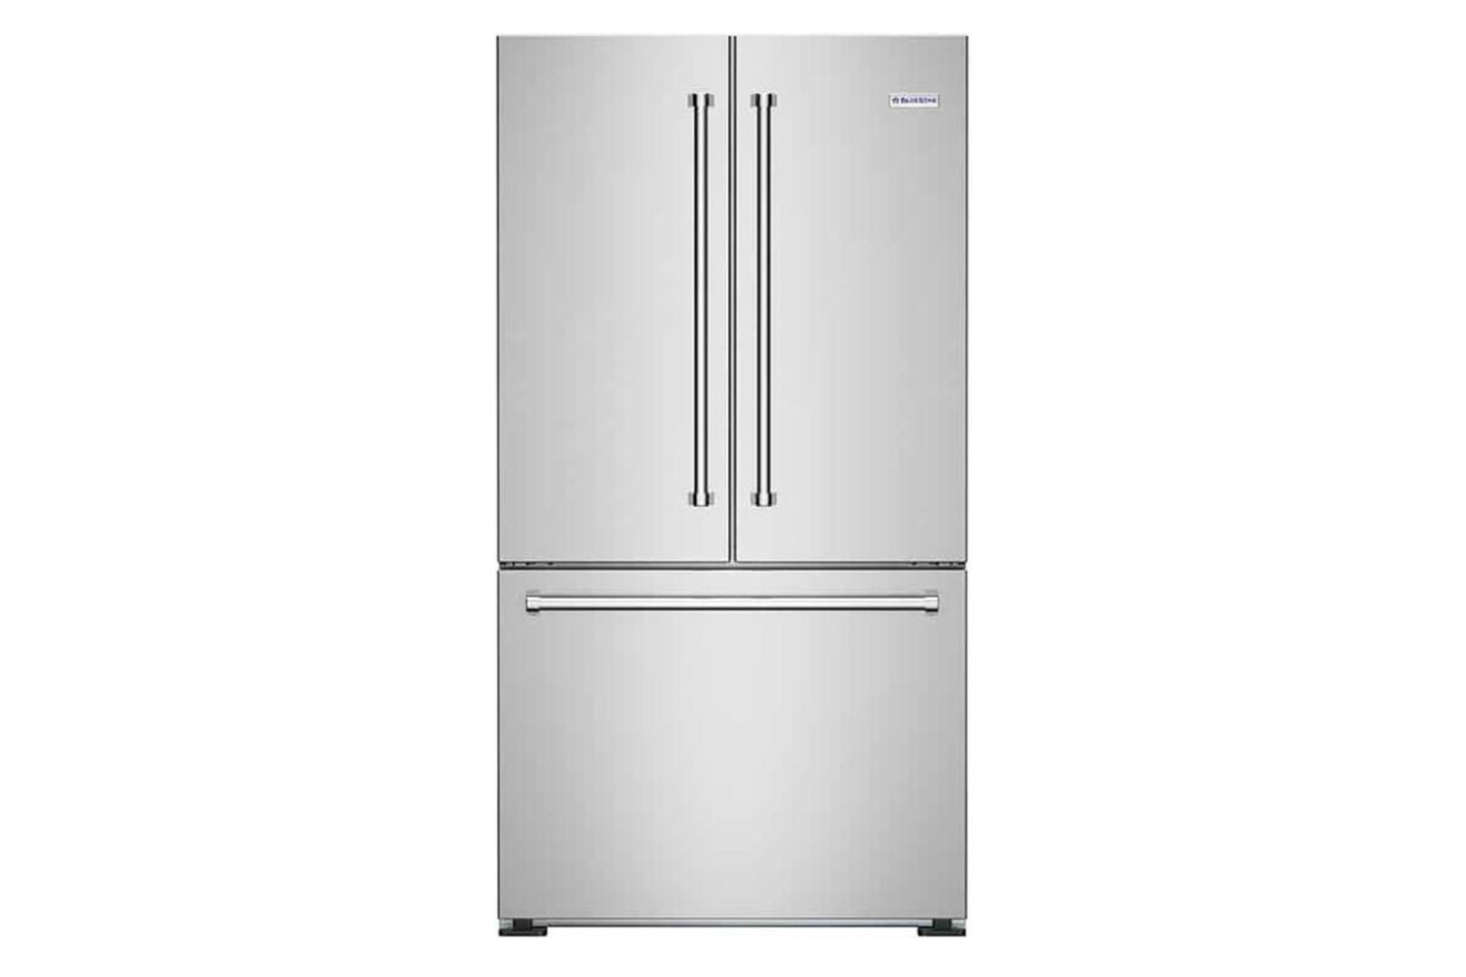 The Bluestar 36-Inch Counter-Depth French Door Refrigerator (FBFD360) is a shallow 26 3/16 inches for $2,995 at Appliances Connection.